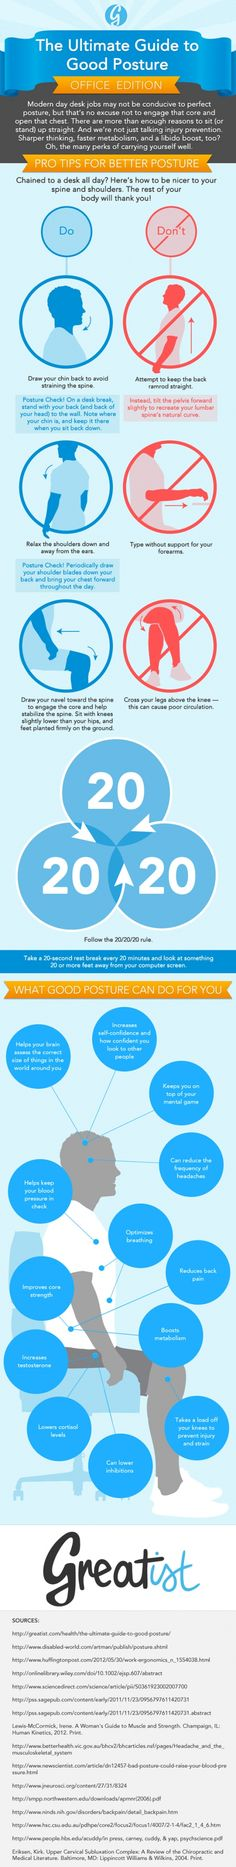 Here are some pro tips to good posture despite having a desk job! #ergonomics #facilities